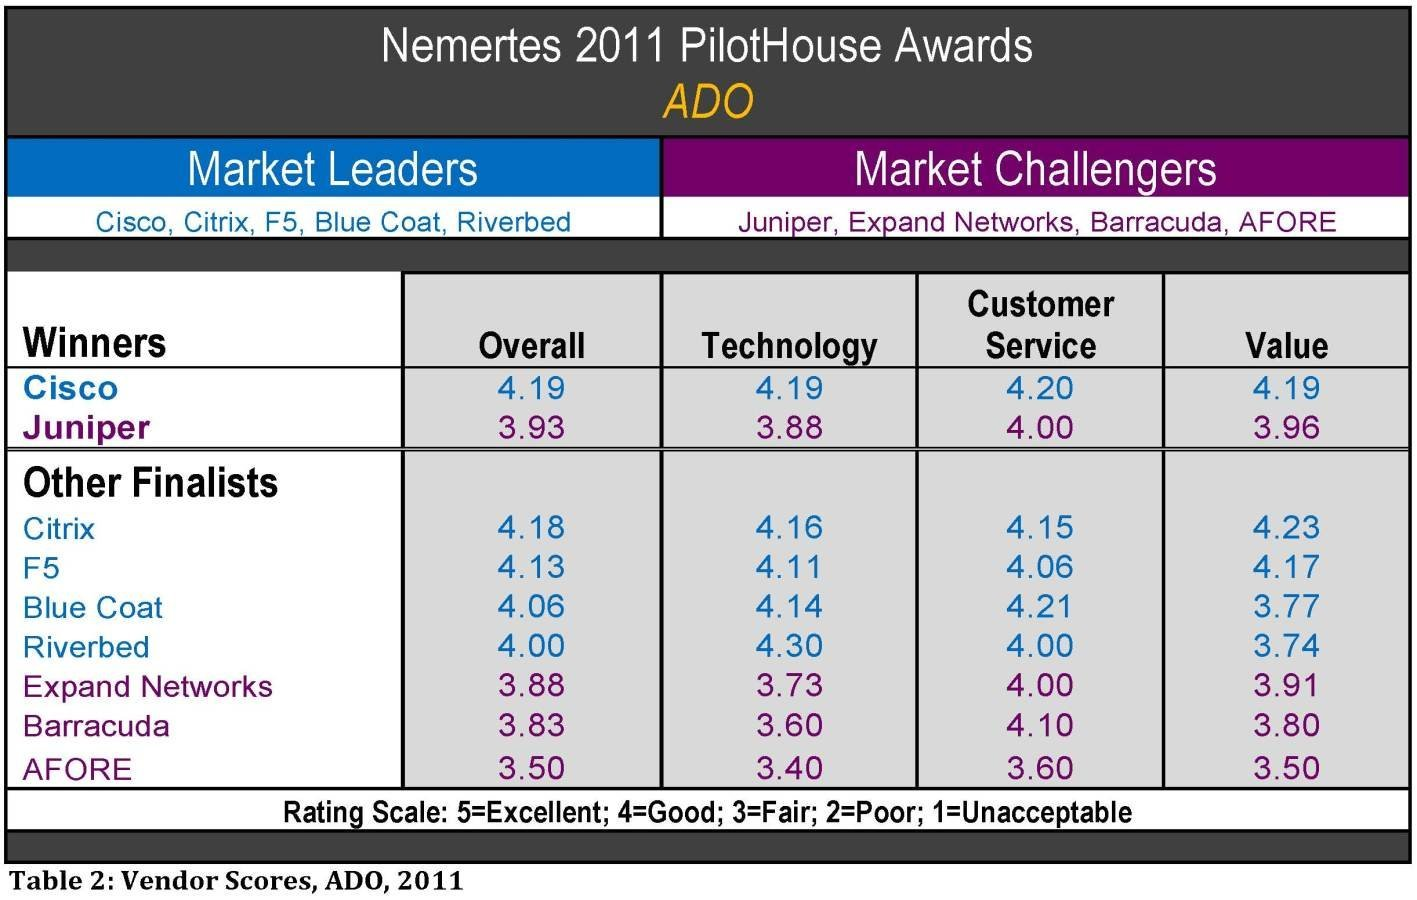 Nemertes 2011 PilotHouse Awards for ADO vendors